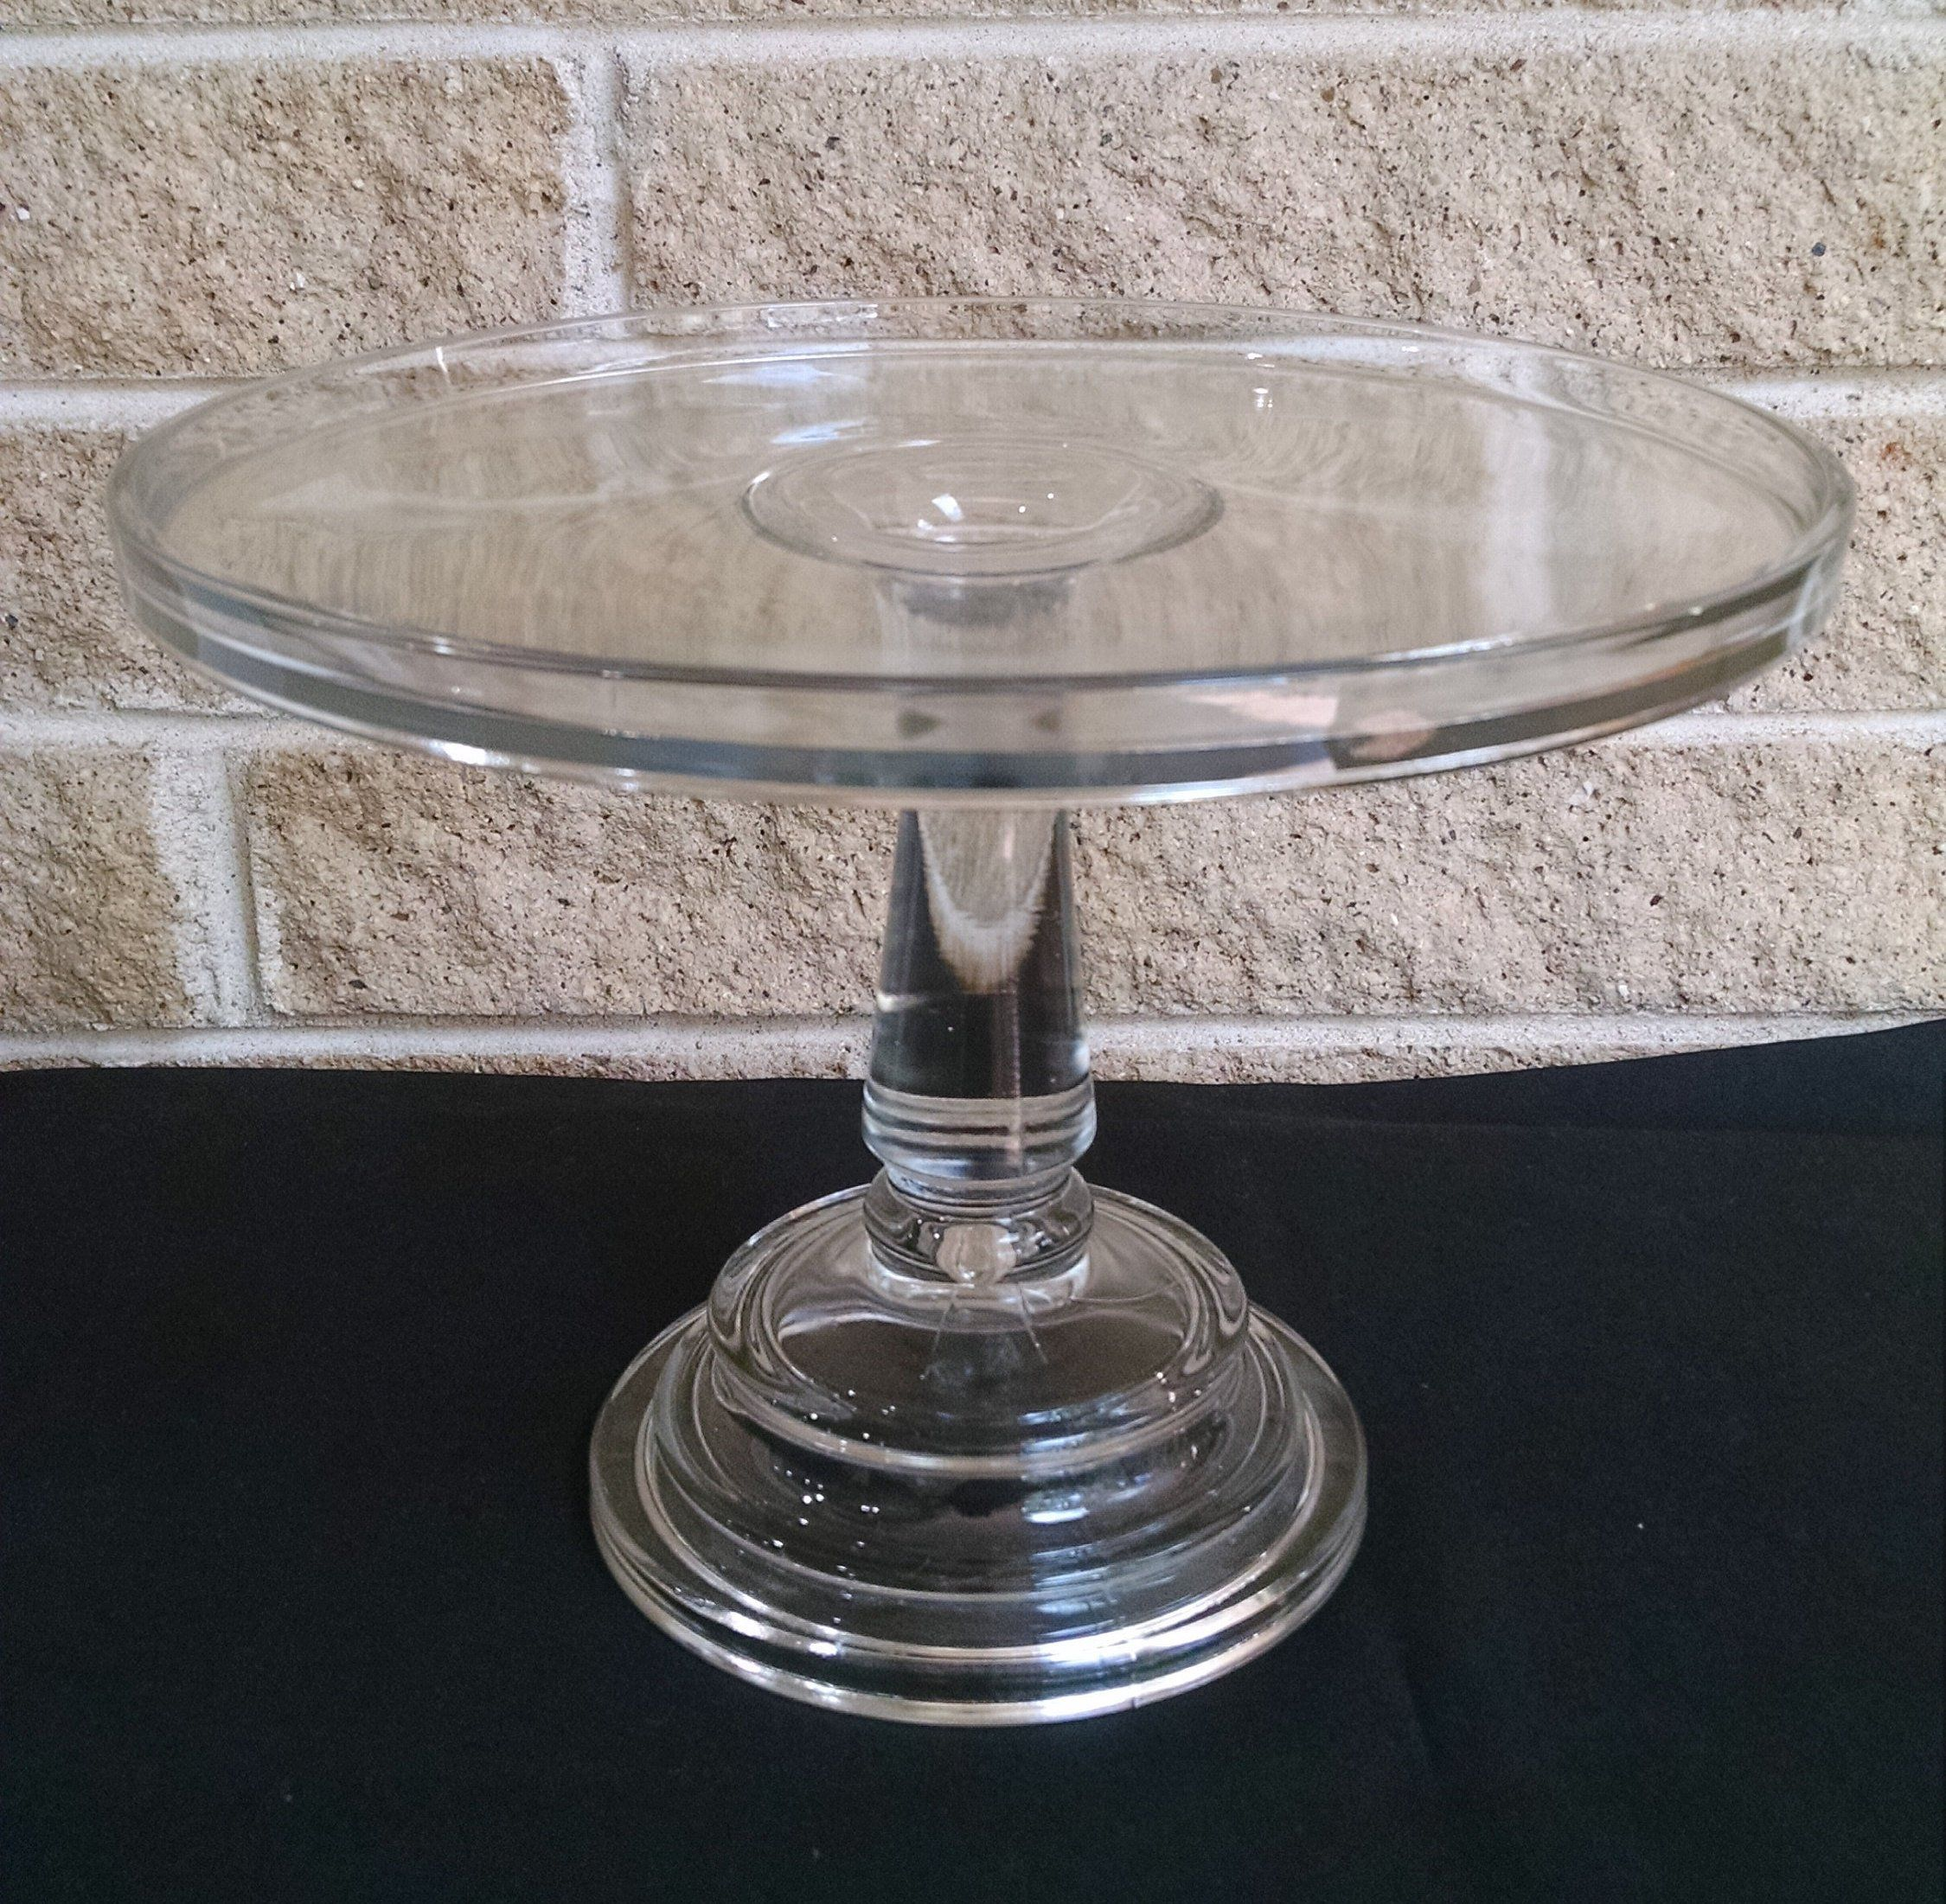 Cake stand extra tall vintage wedding cake stand large